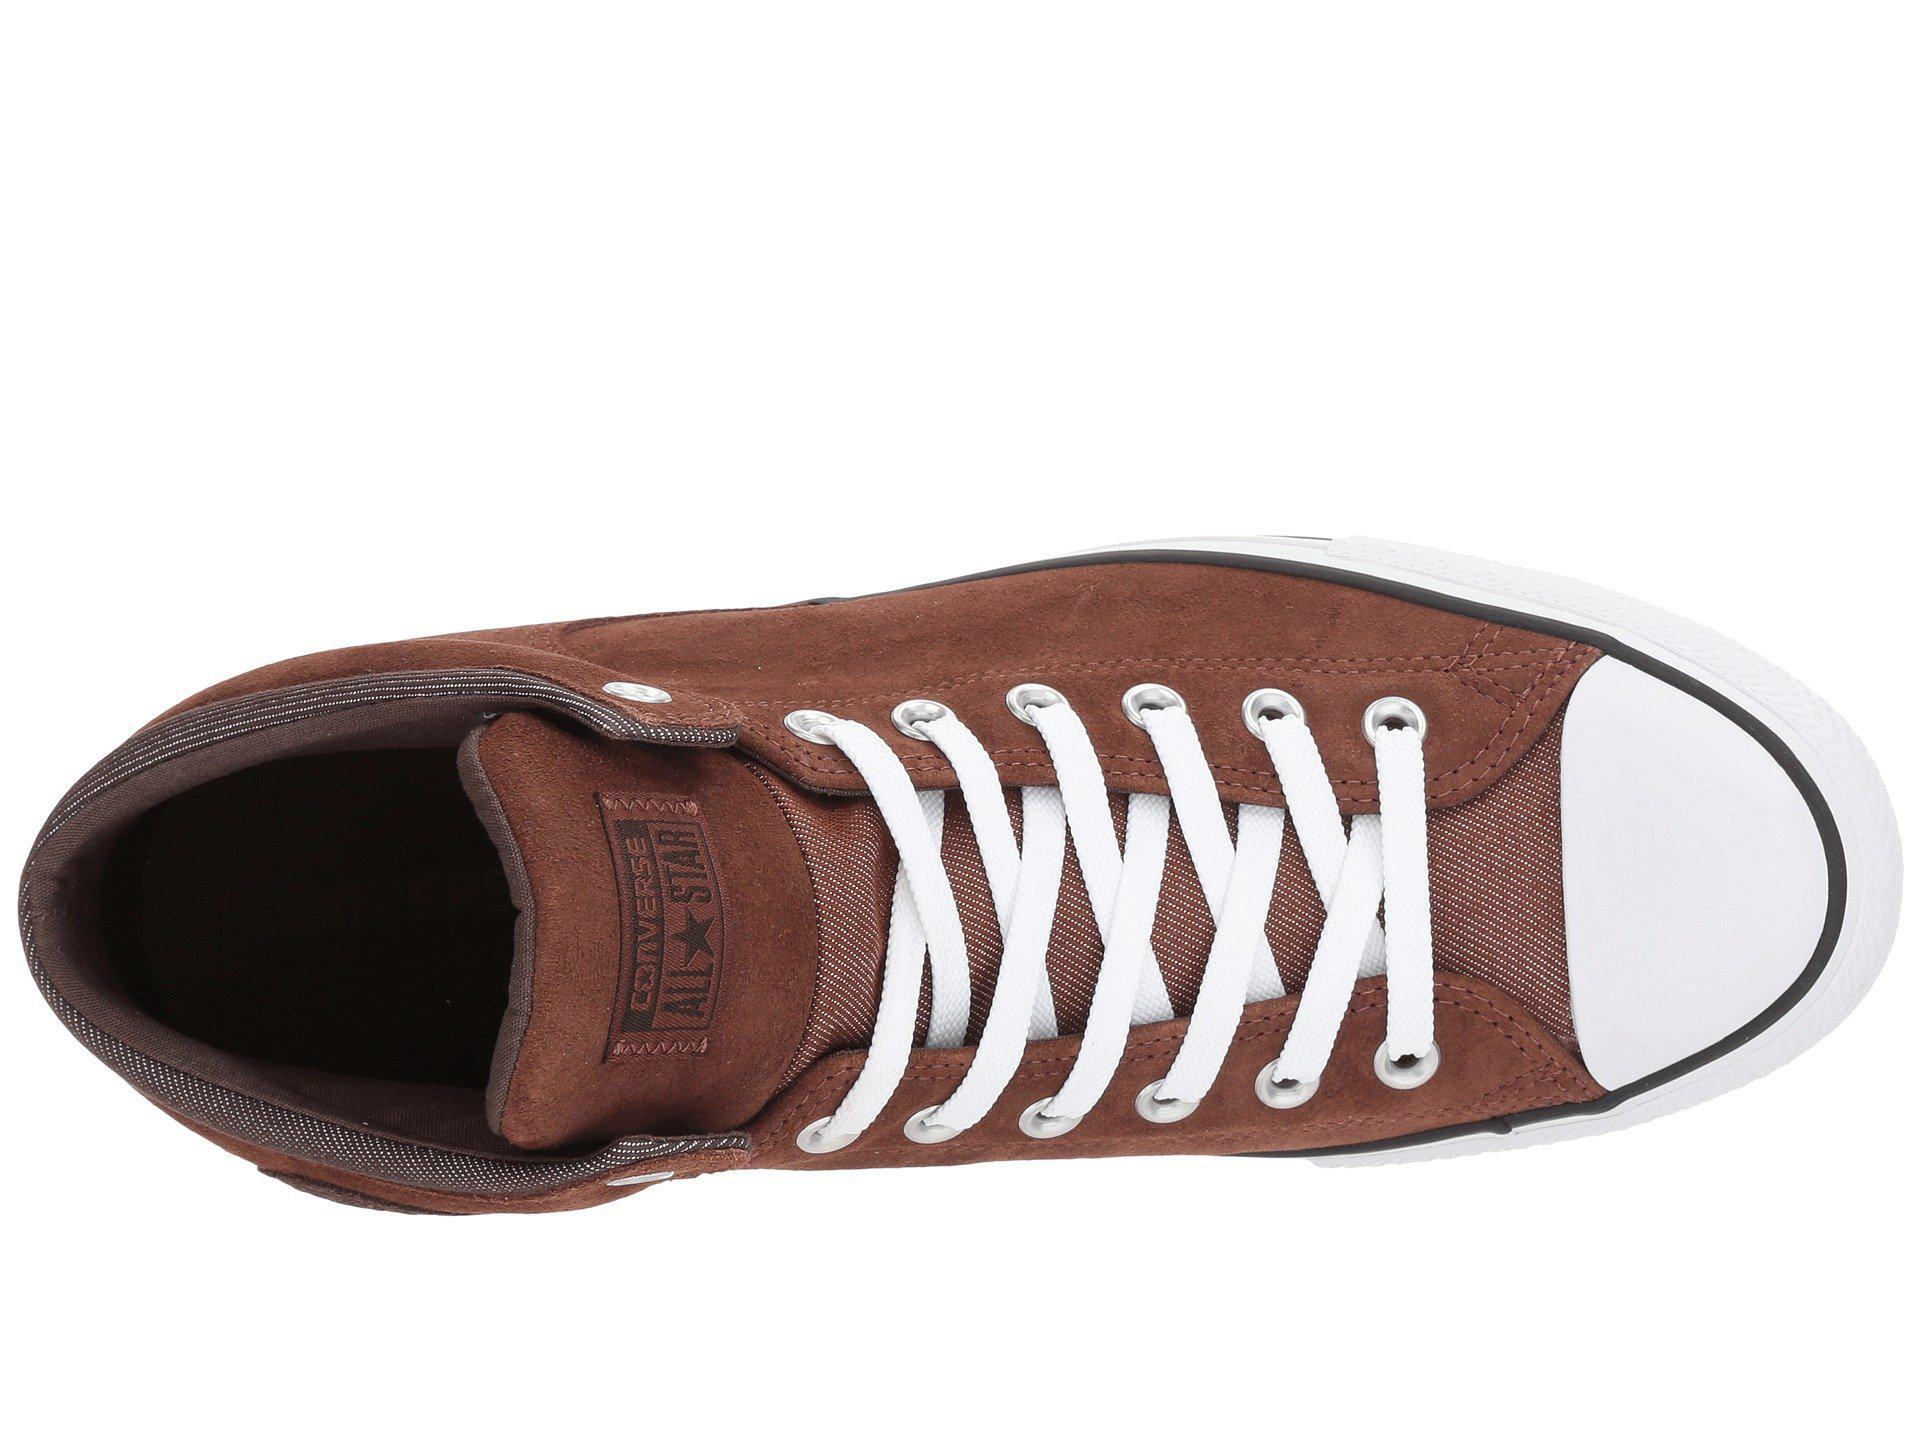 Converse - Brown Chuck Taylor® All Star® High Street Thermal Suede Hi for  Men. View fullscreen ad8ce2ae3